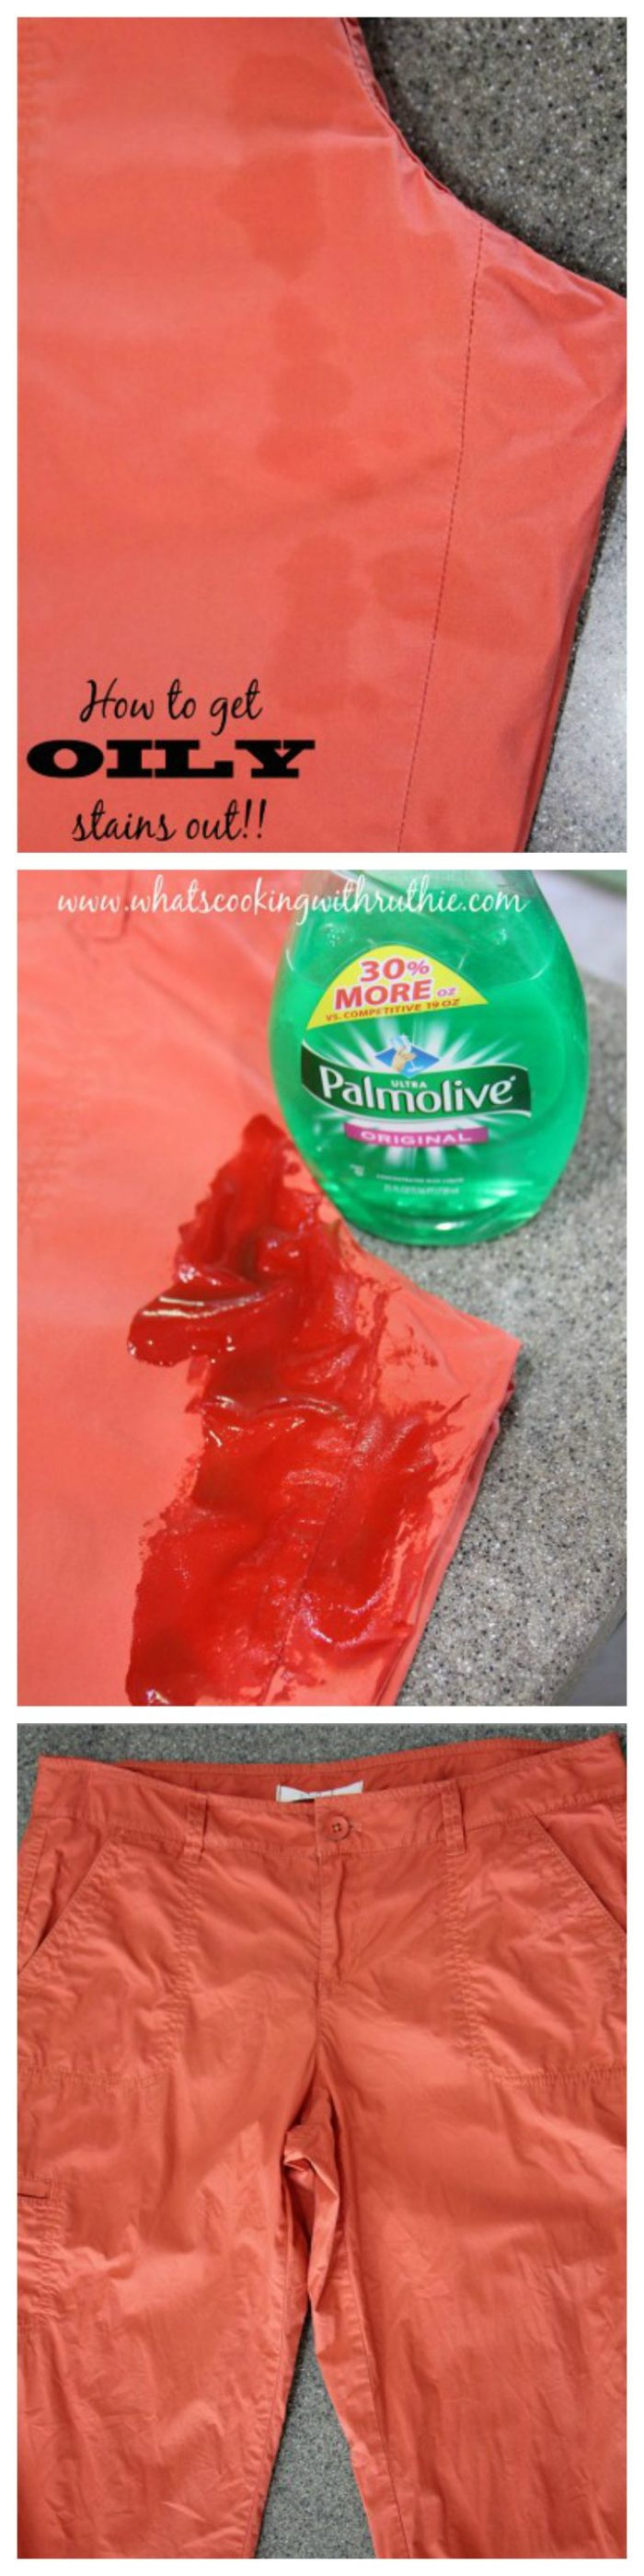 How to get Oily Stains Out by www.cookingwithruthie.com is one of the BEST laundry tricks ever!!